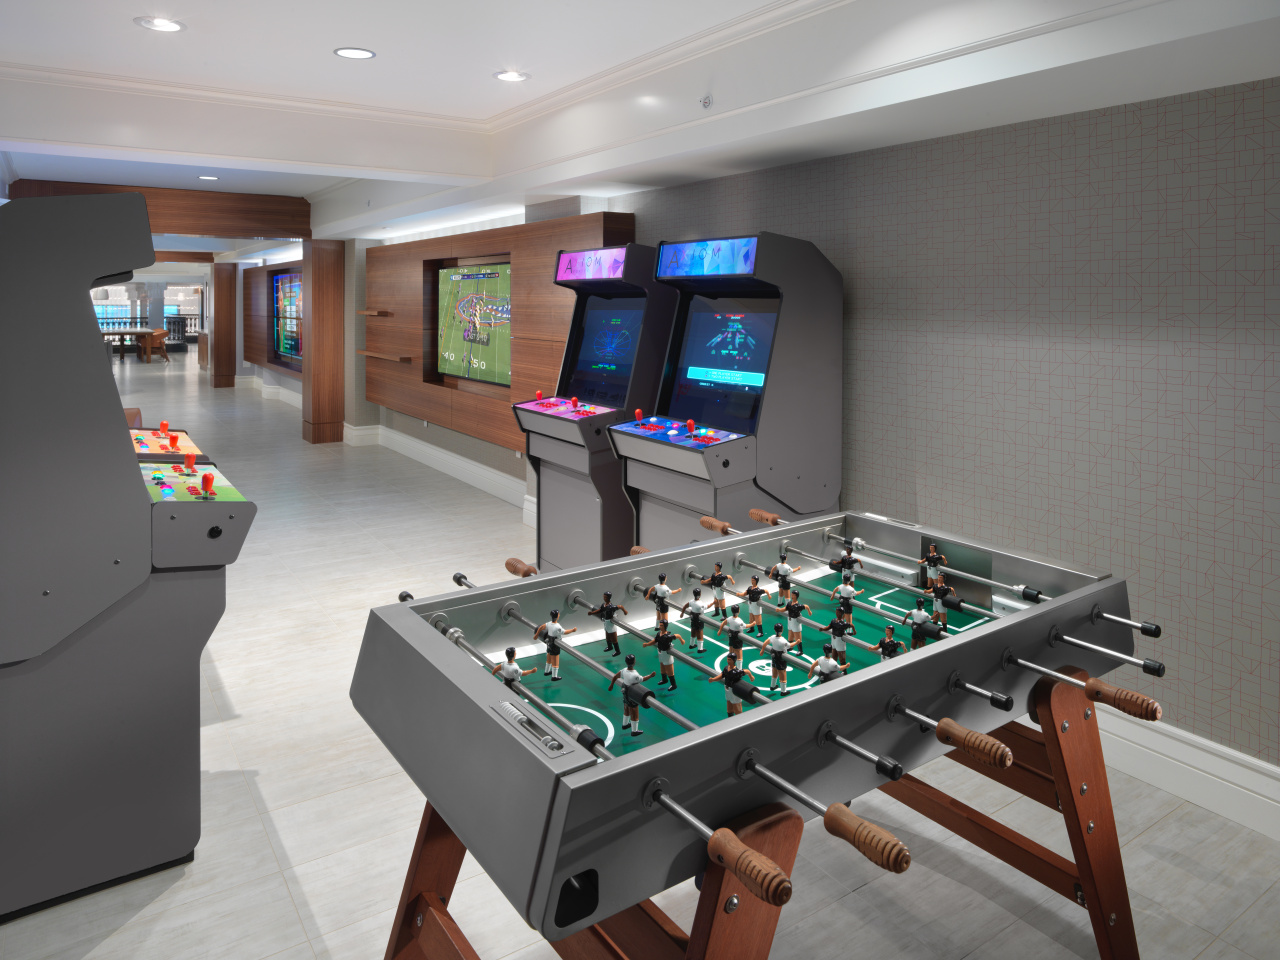 Arcade games and foosball table in the Cloud lounge